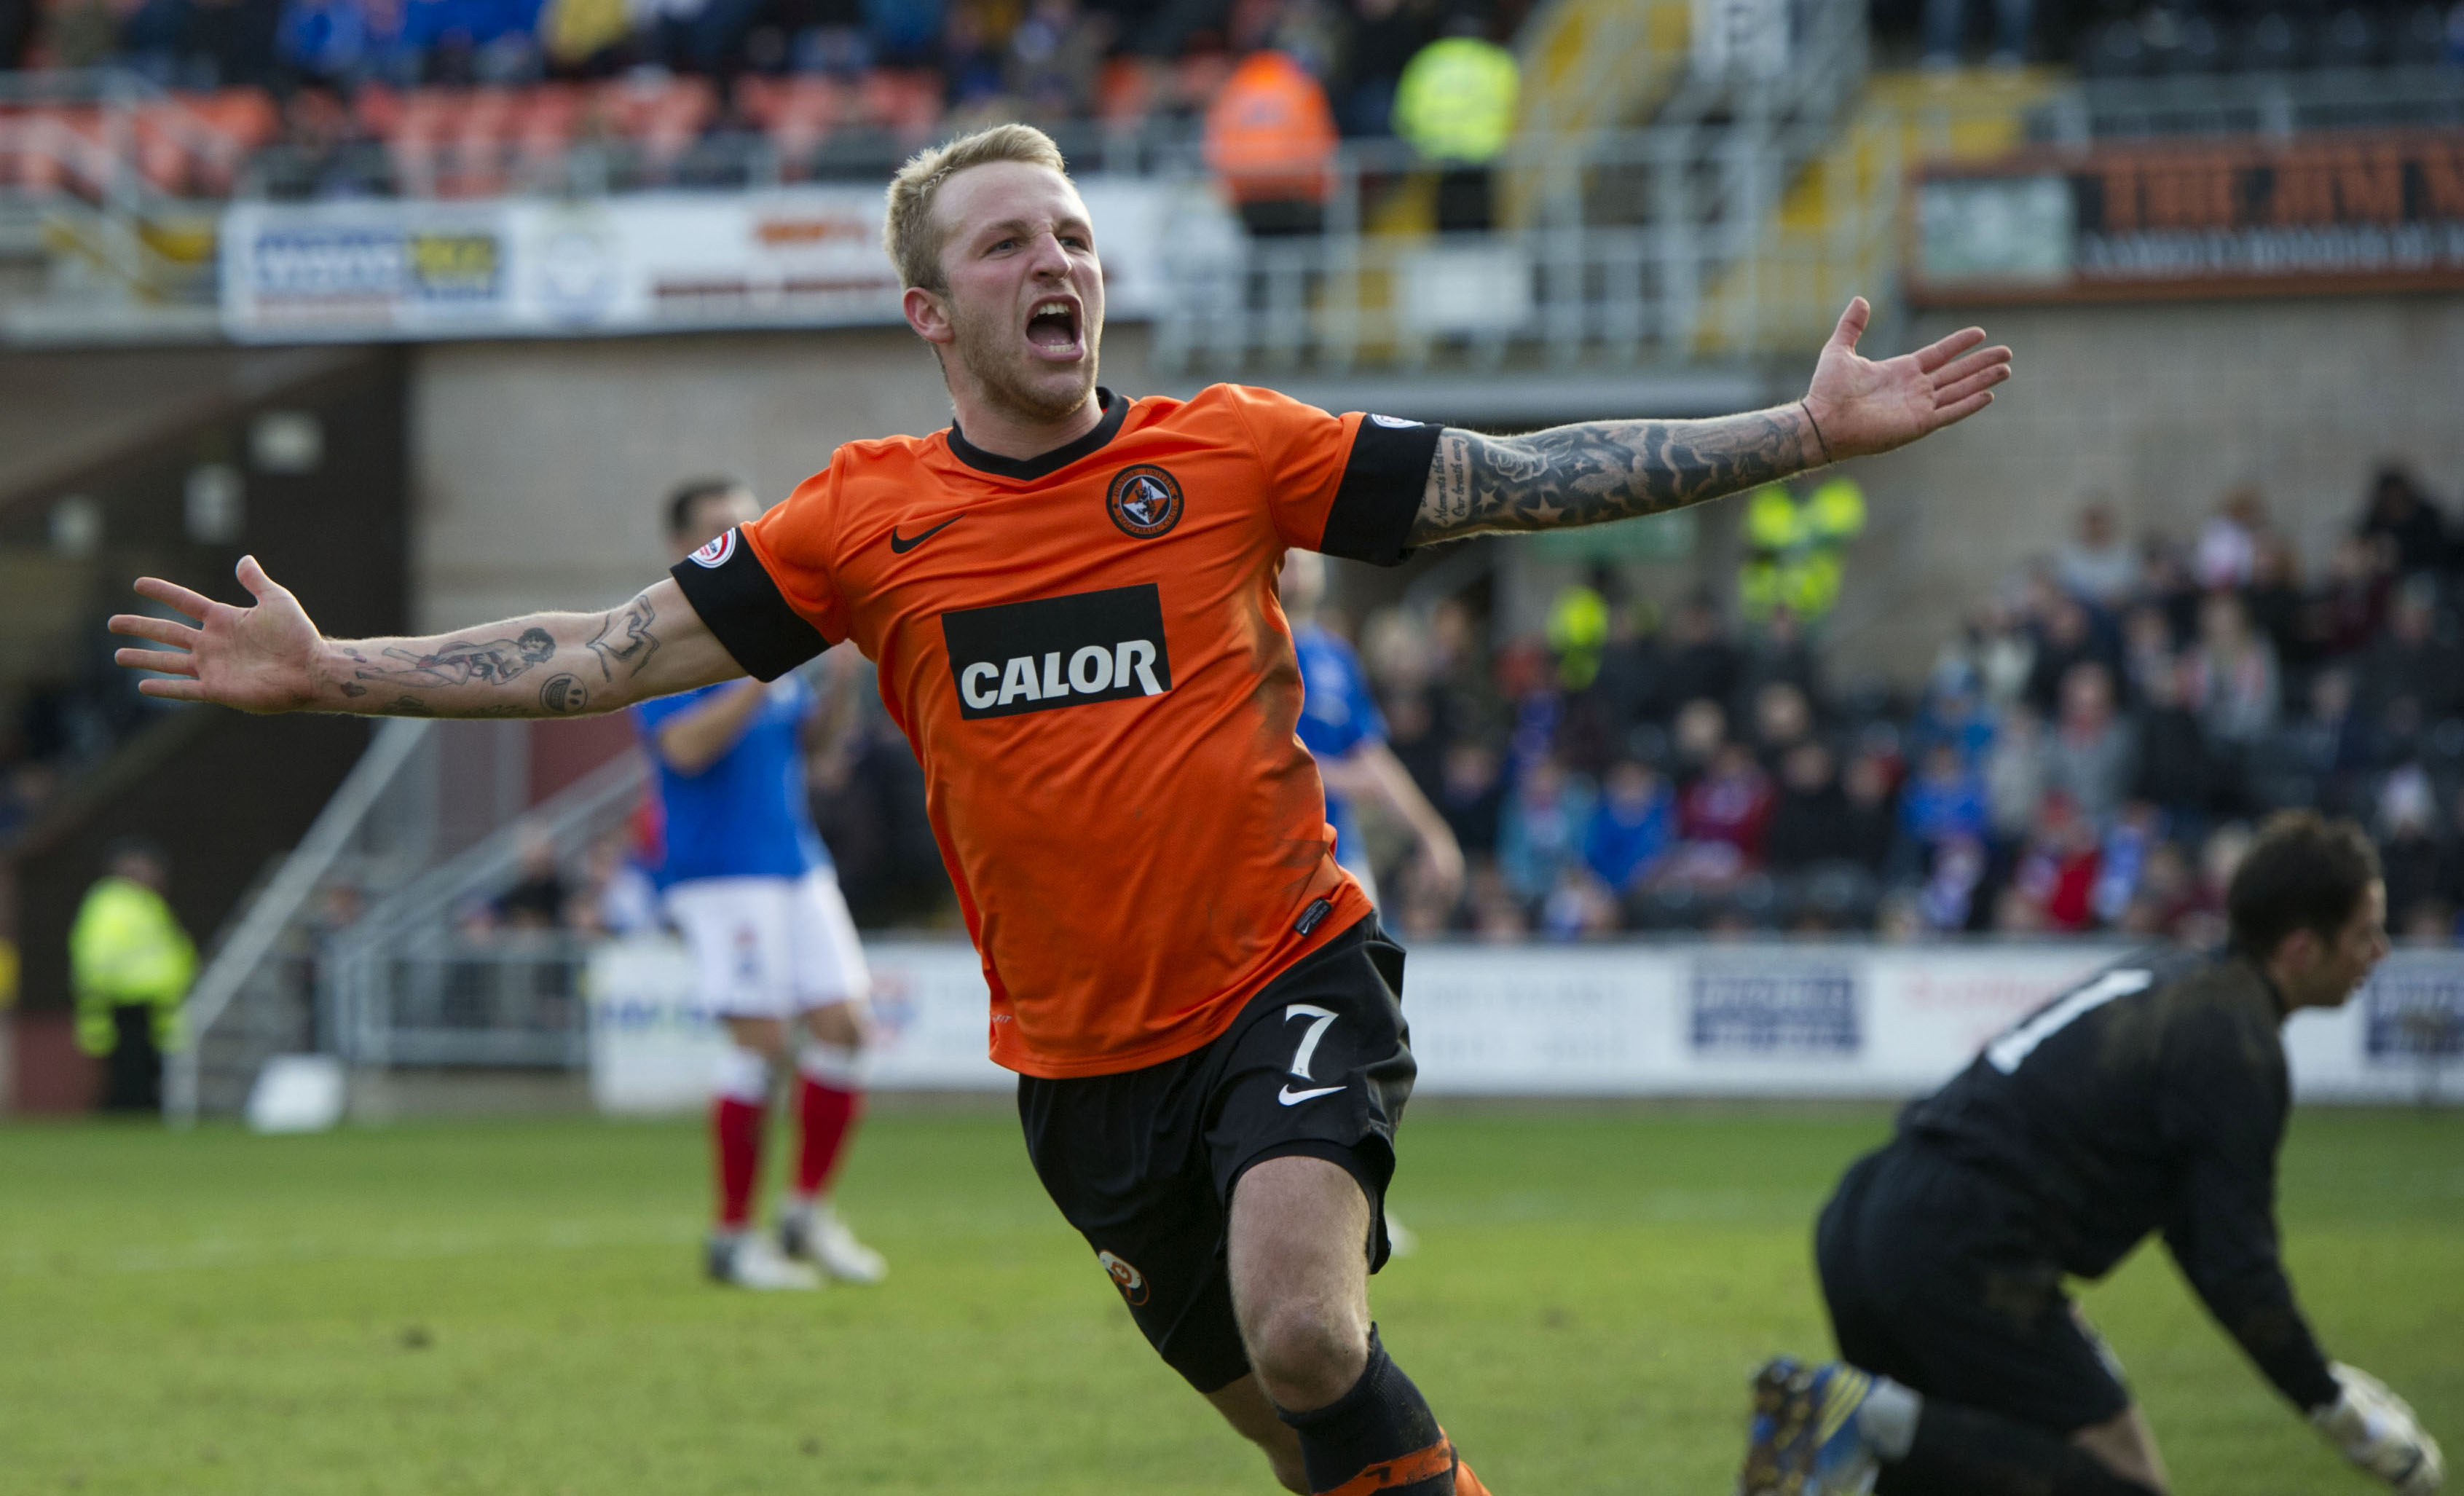 Johnny Russell celebrates a goal in the Scottish Cup against Rangers in 2013.